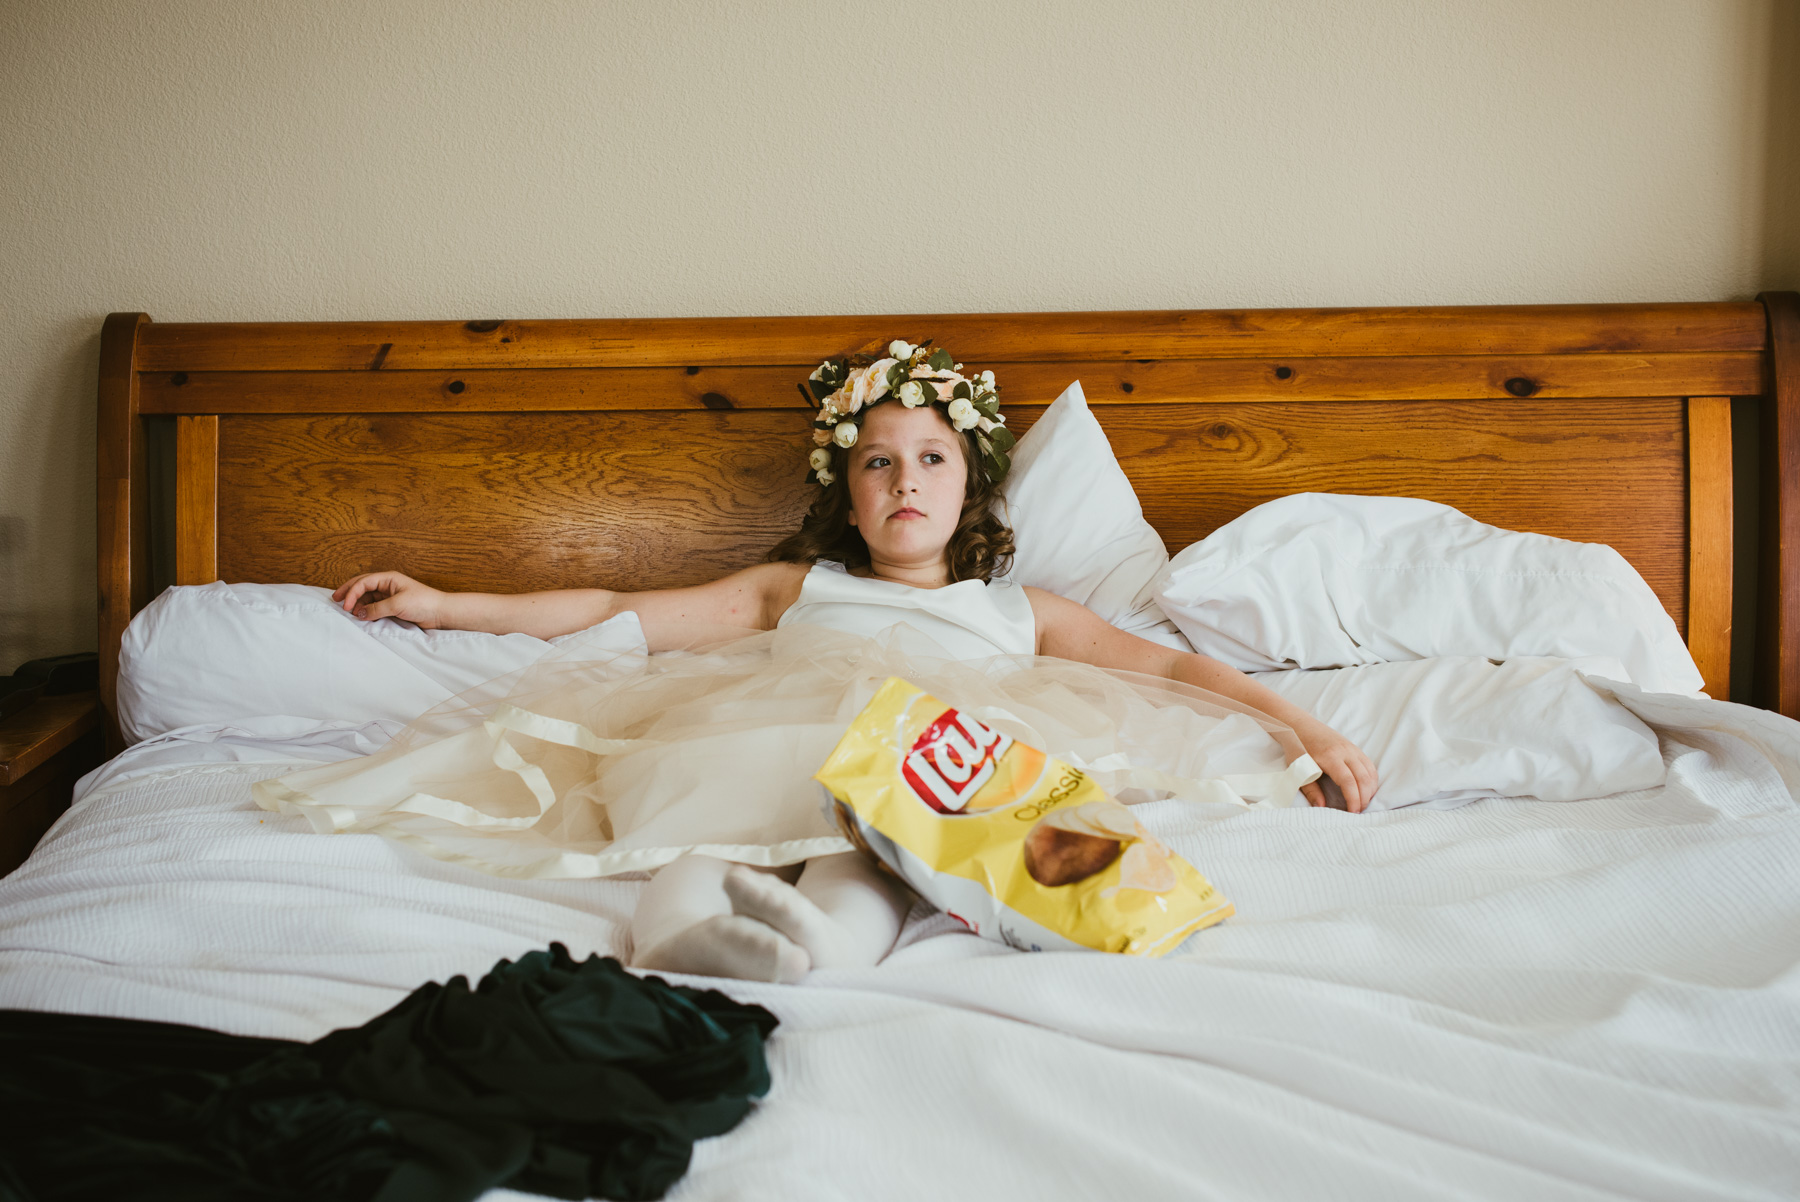 This flower girl was so funny, and so over the getting ready park of the day. Here she is lounging in the room at the Winter Park Mountain Lodge in Winter Park, Colorado. She's ready to get the show on the road!